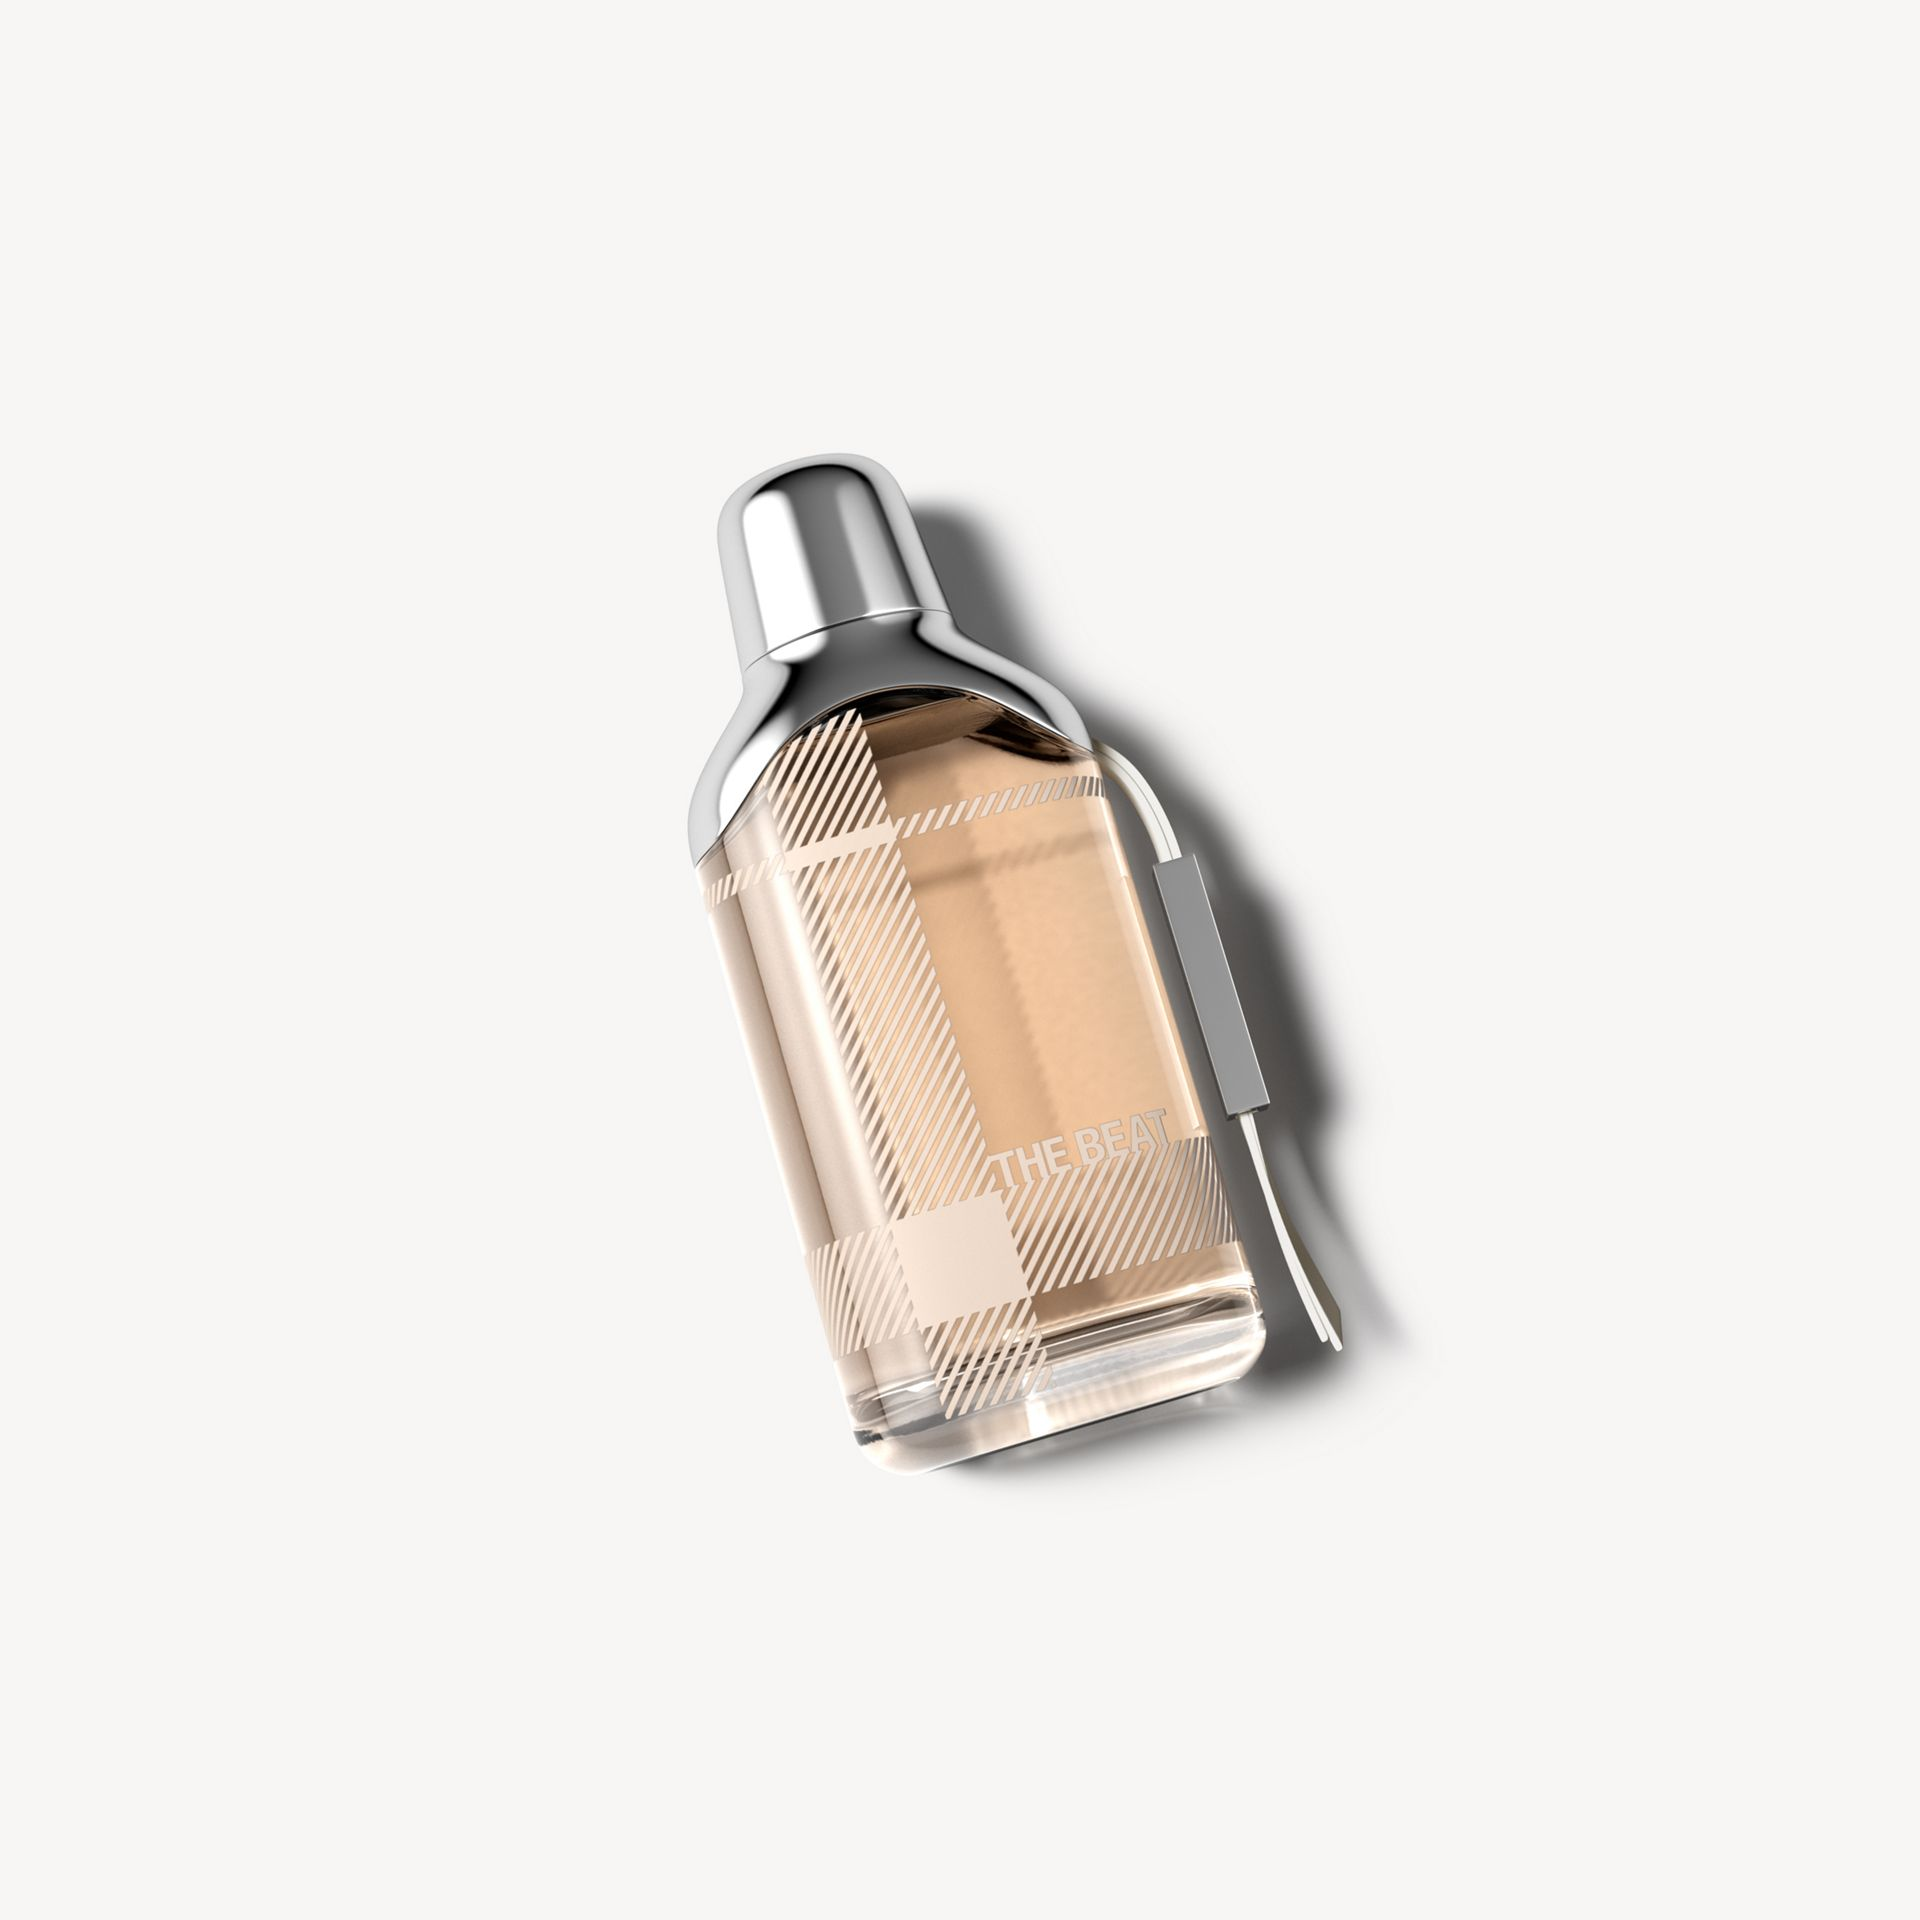 Burberry The Beat Eau de Parfum 50ml - Women | Burberry Australia - gallery image 0